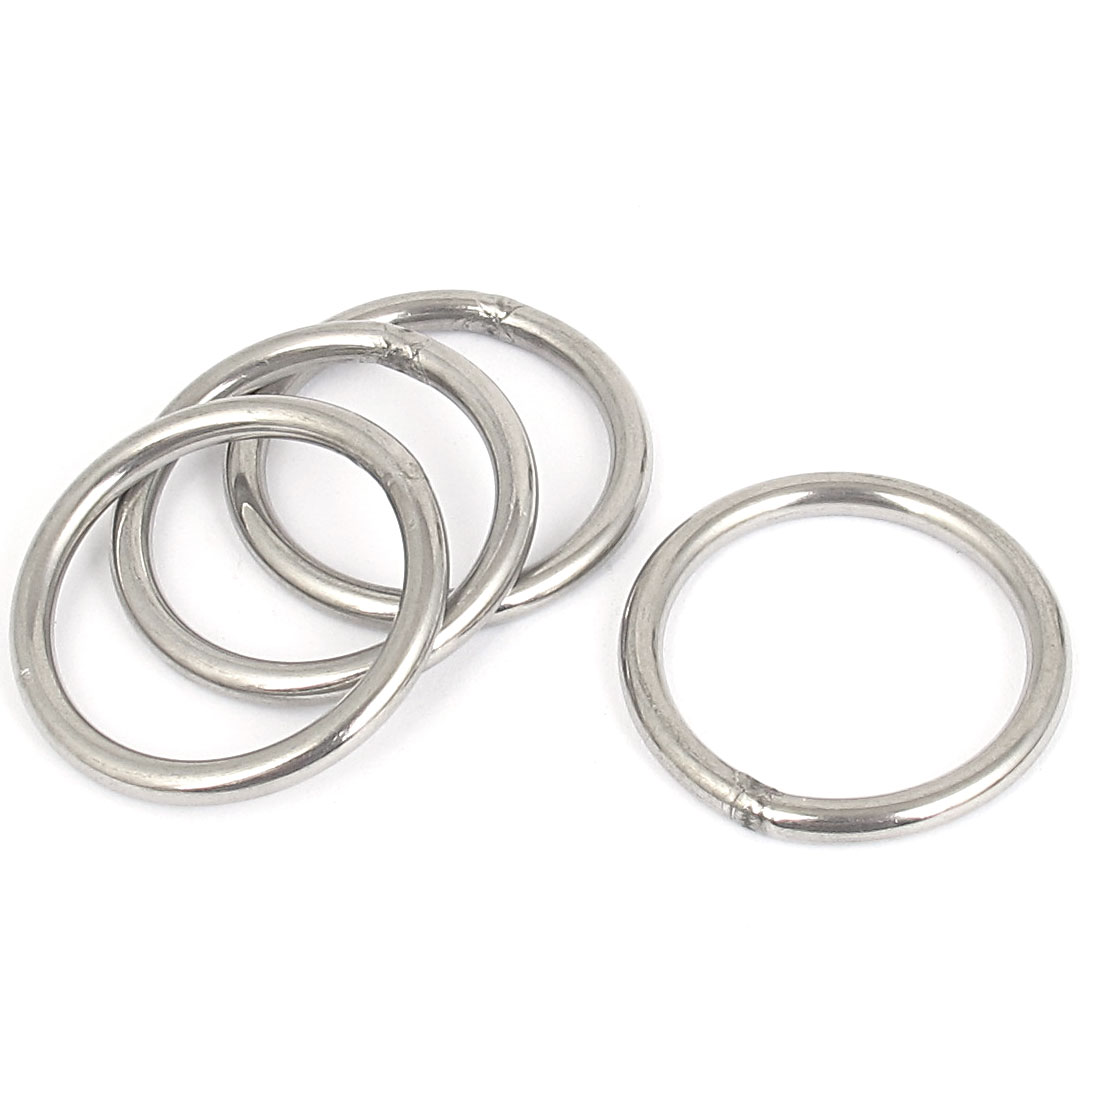 4mmx40mm Stainless Steel Welded O Ring 4pcs for Bags Key Chains Key Rings